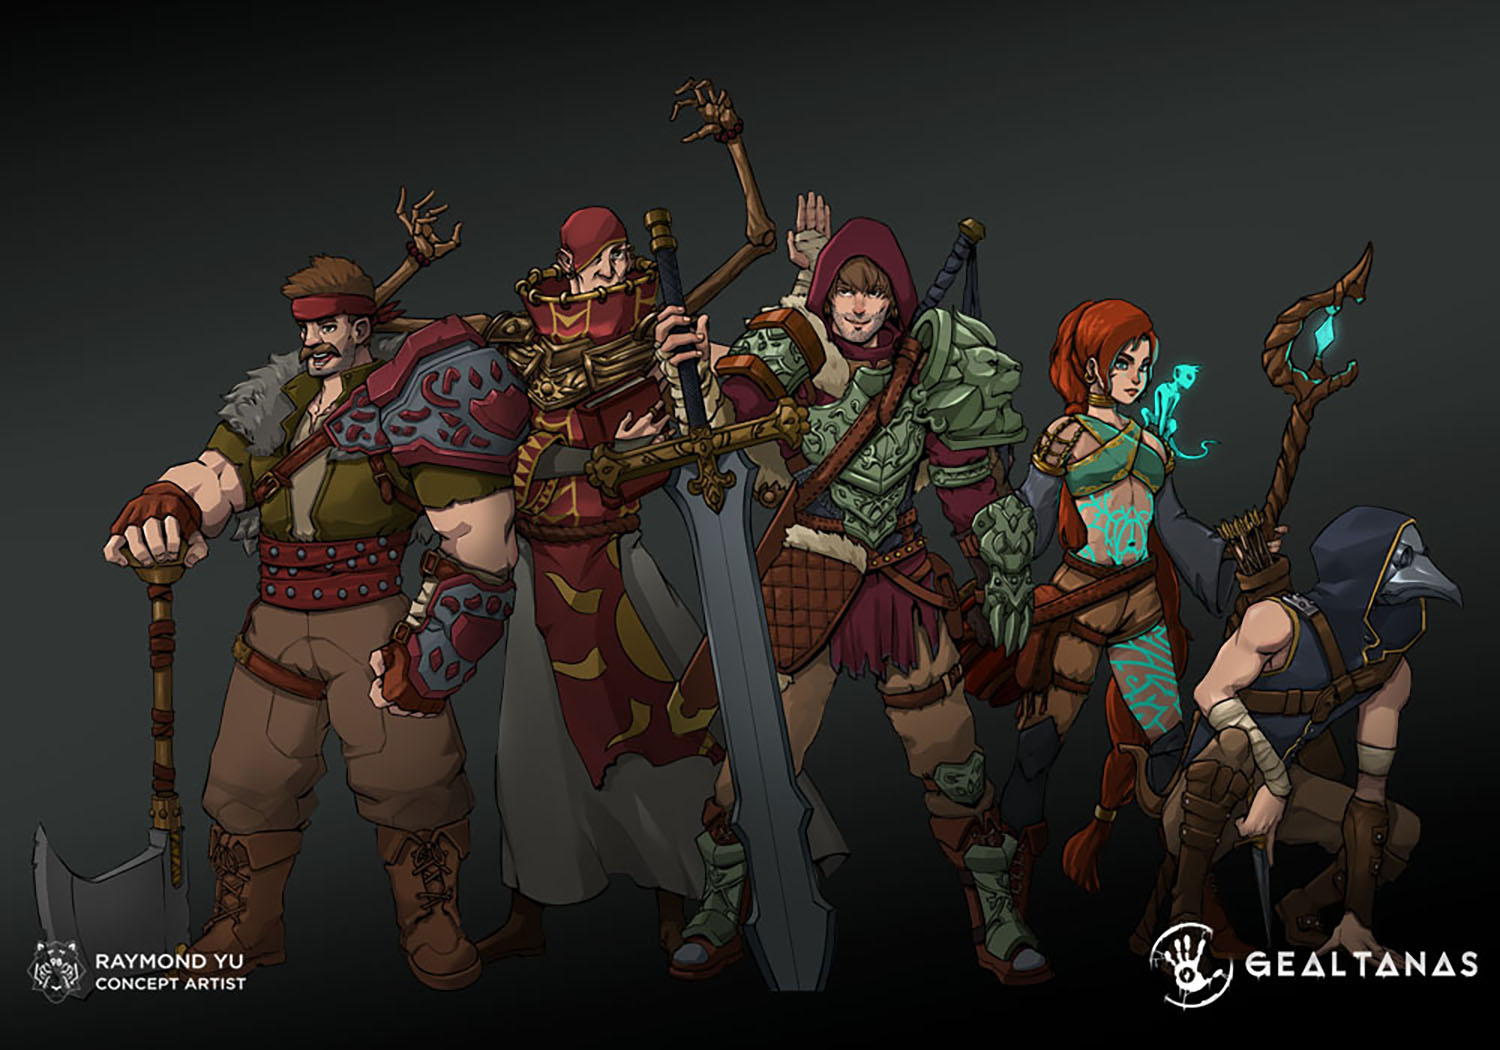 Heroes for the an Irish and Gaelic based fantasy game idea, Gealtanas.